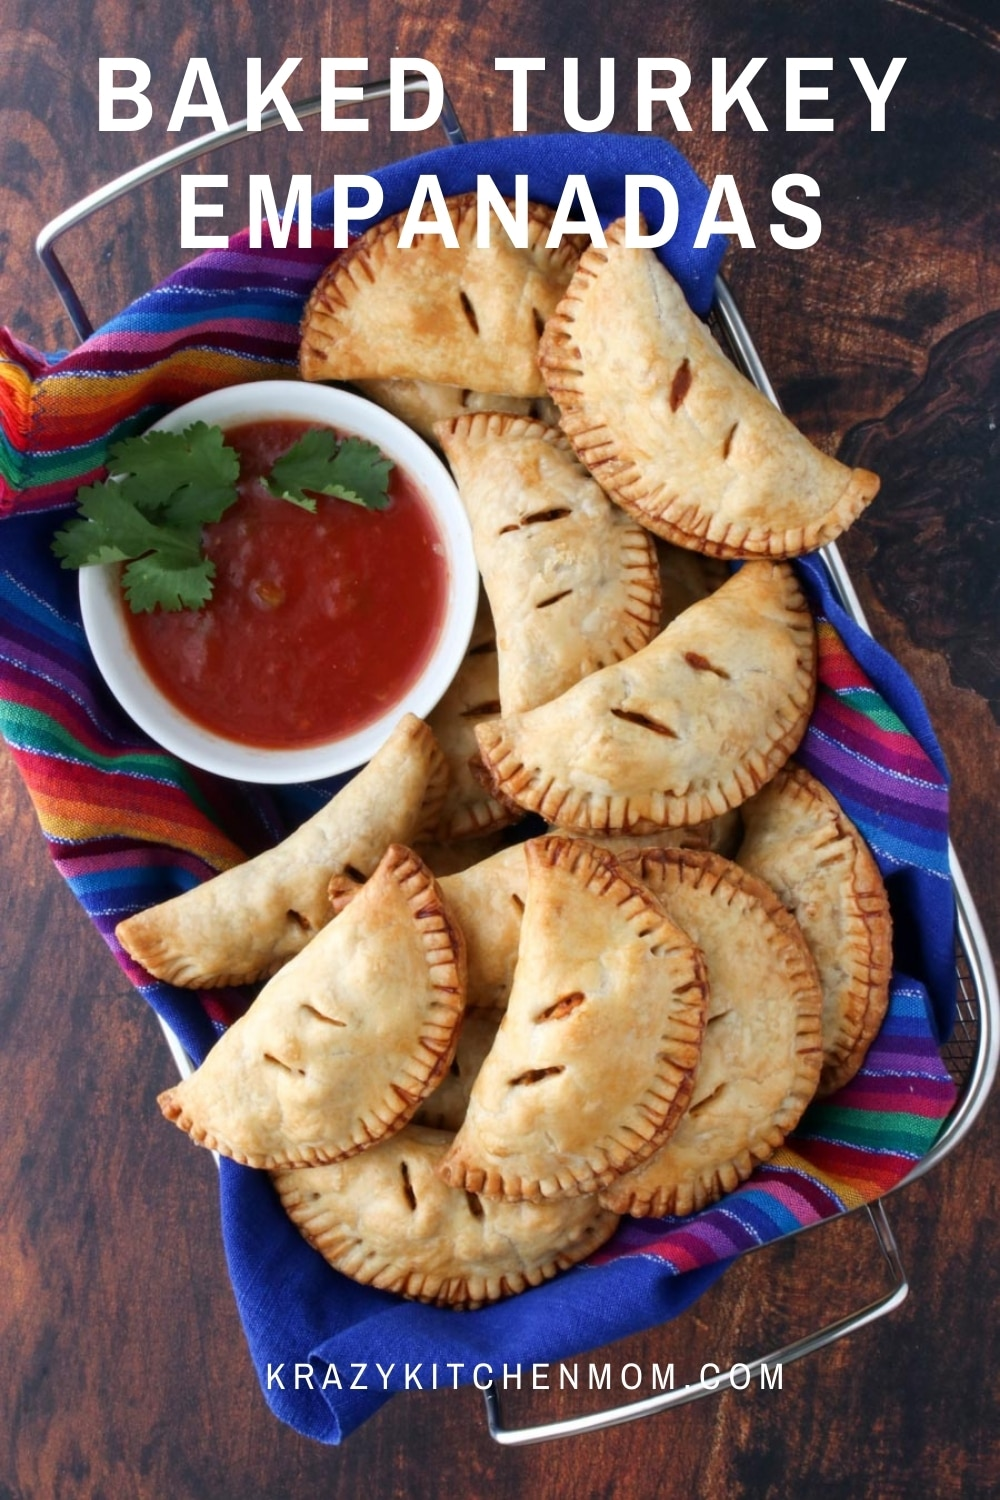 Baked Turkey Empanadas Made with Ground Turkey Breast are an easy calorie-conscious snack or quick dinner for the entire family. via @krazykitchenmom